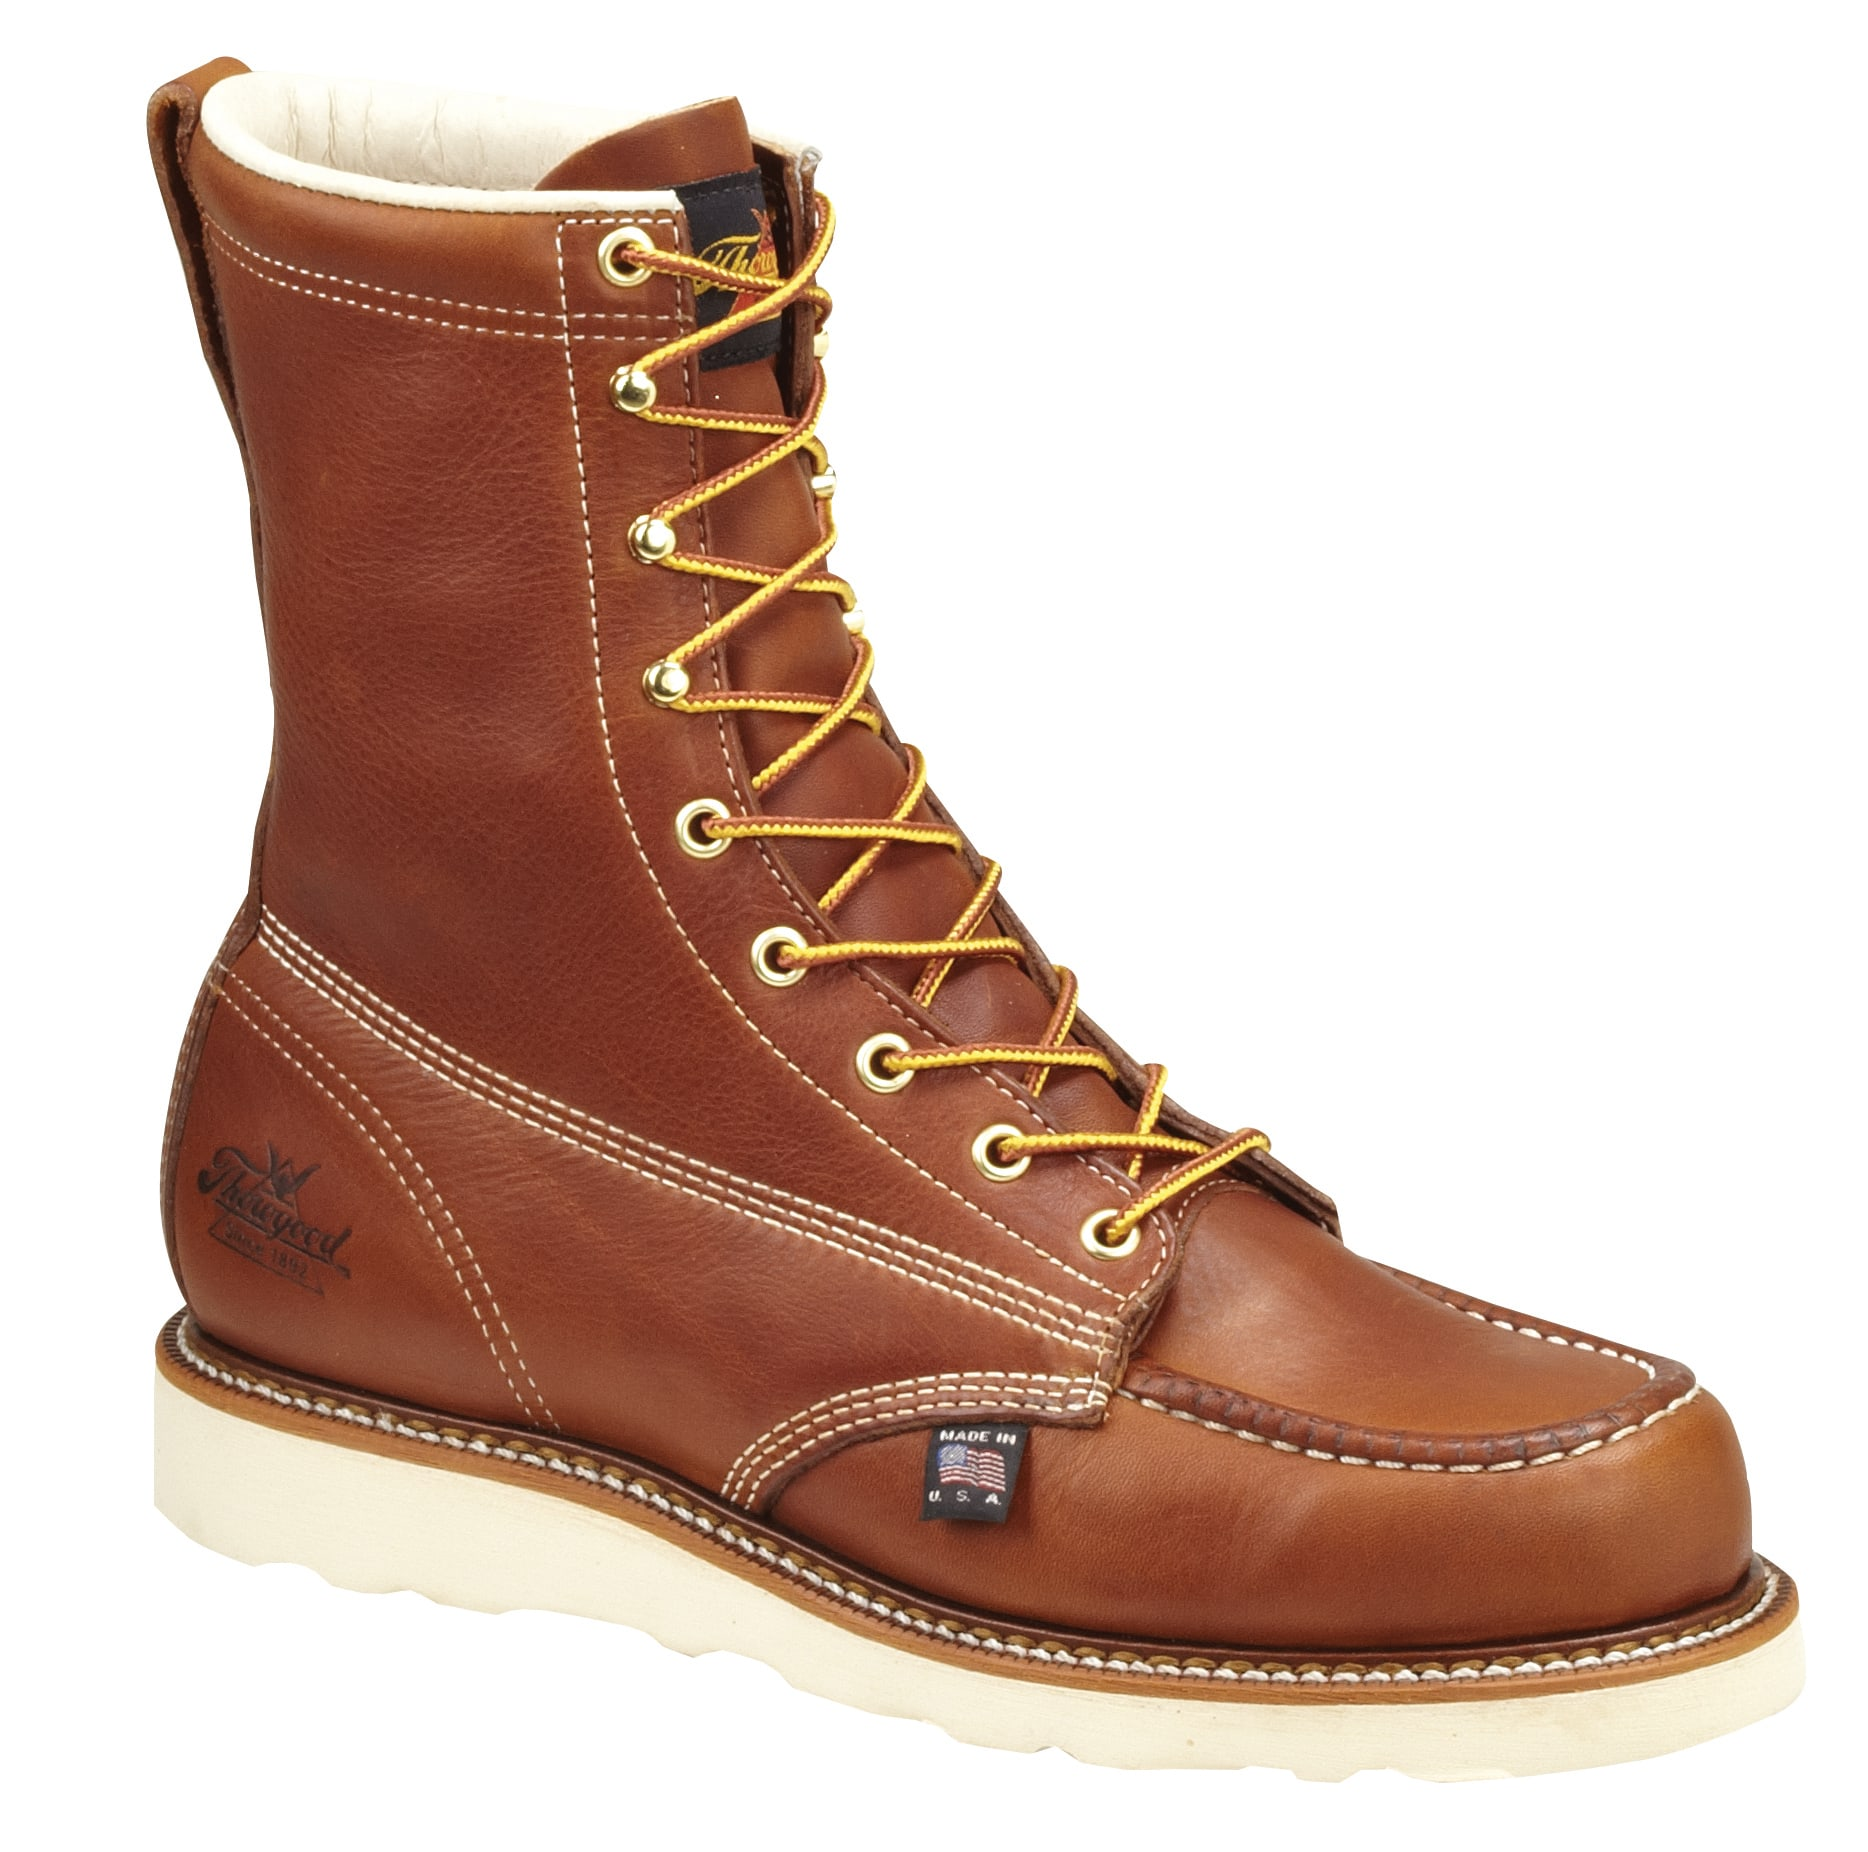 "Thorogood Men's American Heritage 8"" Wedge Sole Moc Steel Toe thorogood,thorogood mens,thorogood mens boots,thorogood mens work boots,thorogood steel toe,thorogood steel toe boots,brown thorogood steel toe boots,804-4208,804-4208 boots,804-4208 thorogood,steel toe work boots,steel toe boots,brown steel toe boots,steel toe thorogood,lace up steel toe,slip resistant work boots,oil resistant boots,oil resistant work boots,slip resistant boots,slip resistant thorogood boots,safety toe work boots,safety toe boots,safety toe thorogood boots,brown safety toe work boots,brown safety toe,thorogood american heritage,american heritage boots,wedge sole moc toe safety boots,wedge sole steel toe boots,moc toe safety boots,comfortable safety toe boots,usa made boots,usa made safety toe boots,usa made steel toe"